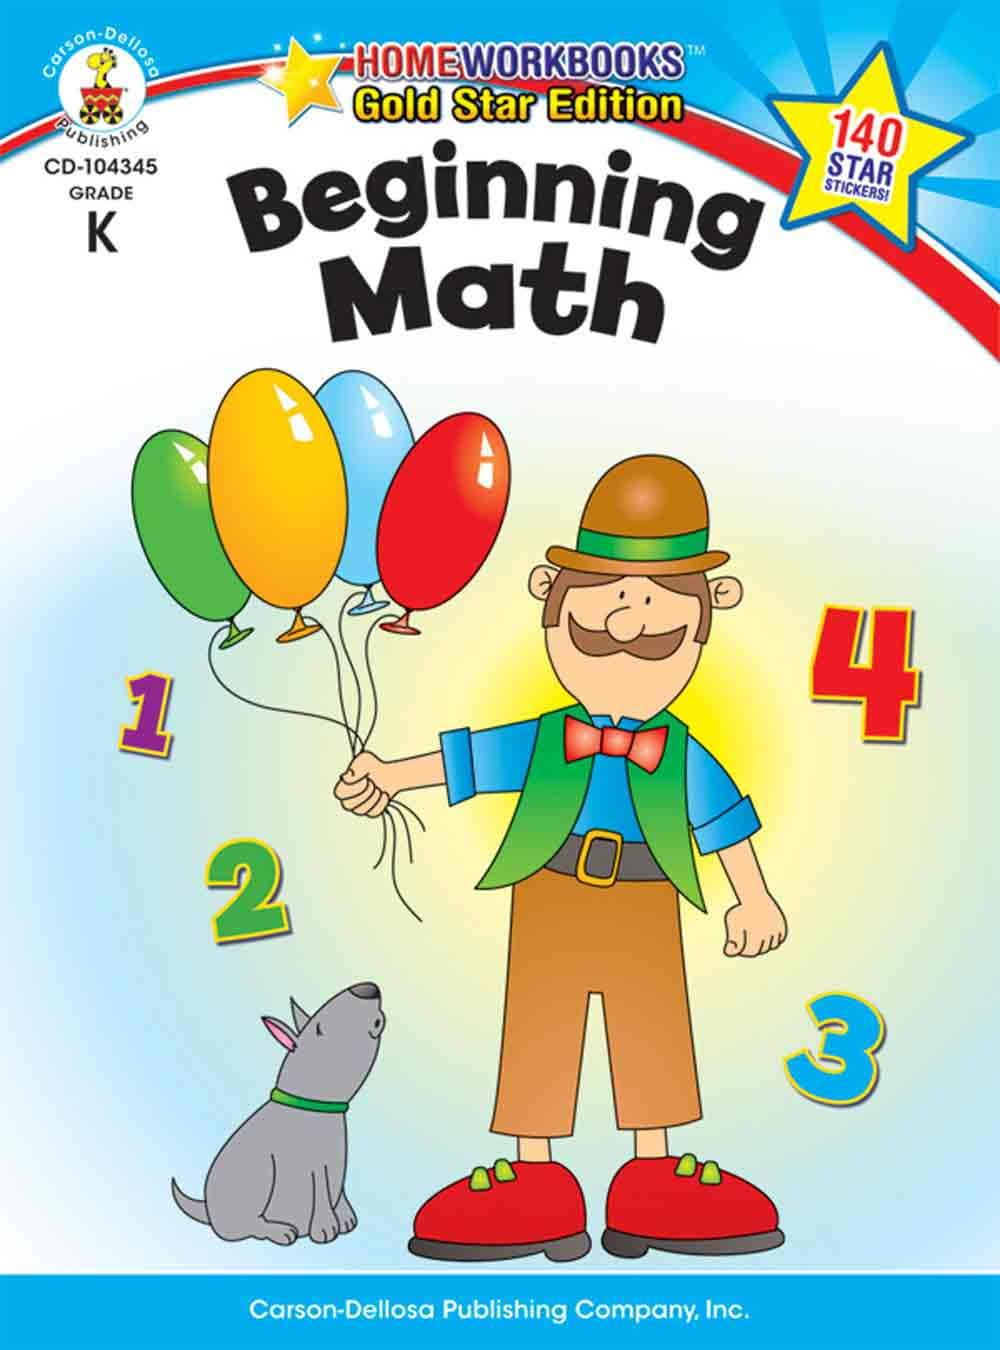 Beginning Math, Grade K: Gold Star Edition Home Workbooks - Carson Dellosa Publishing